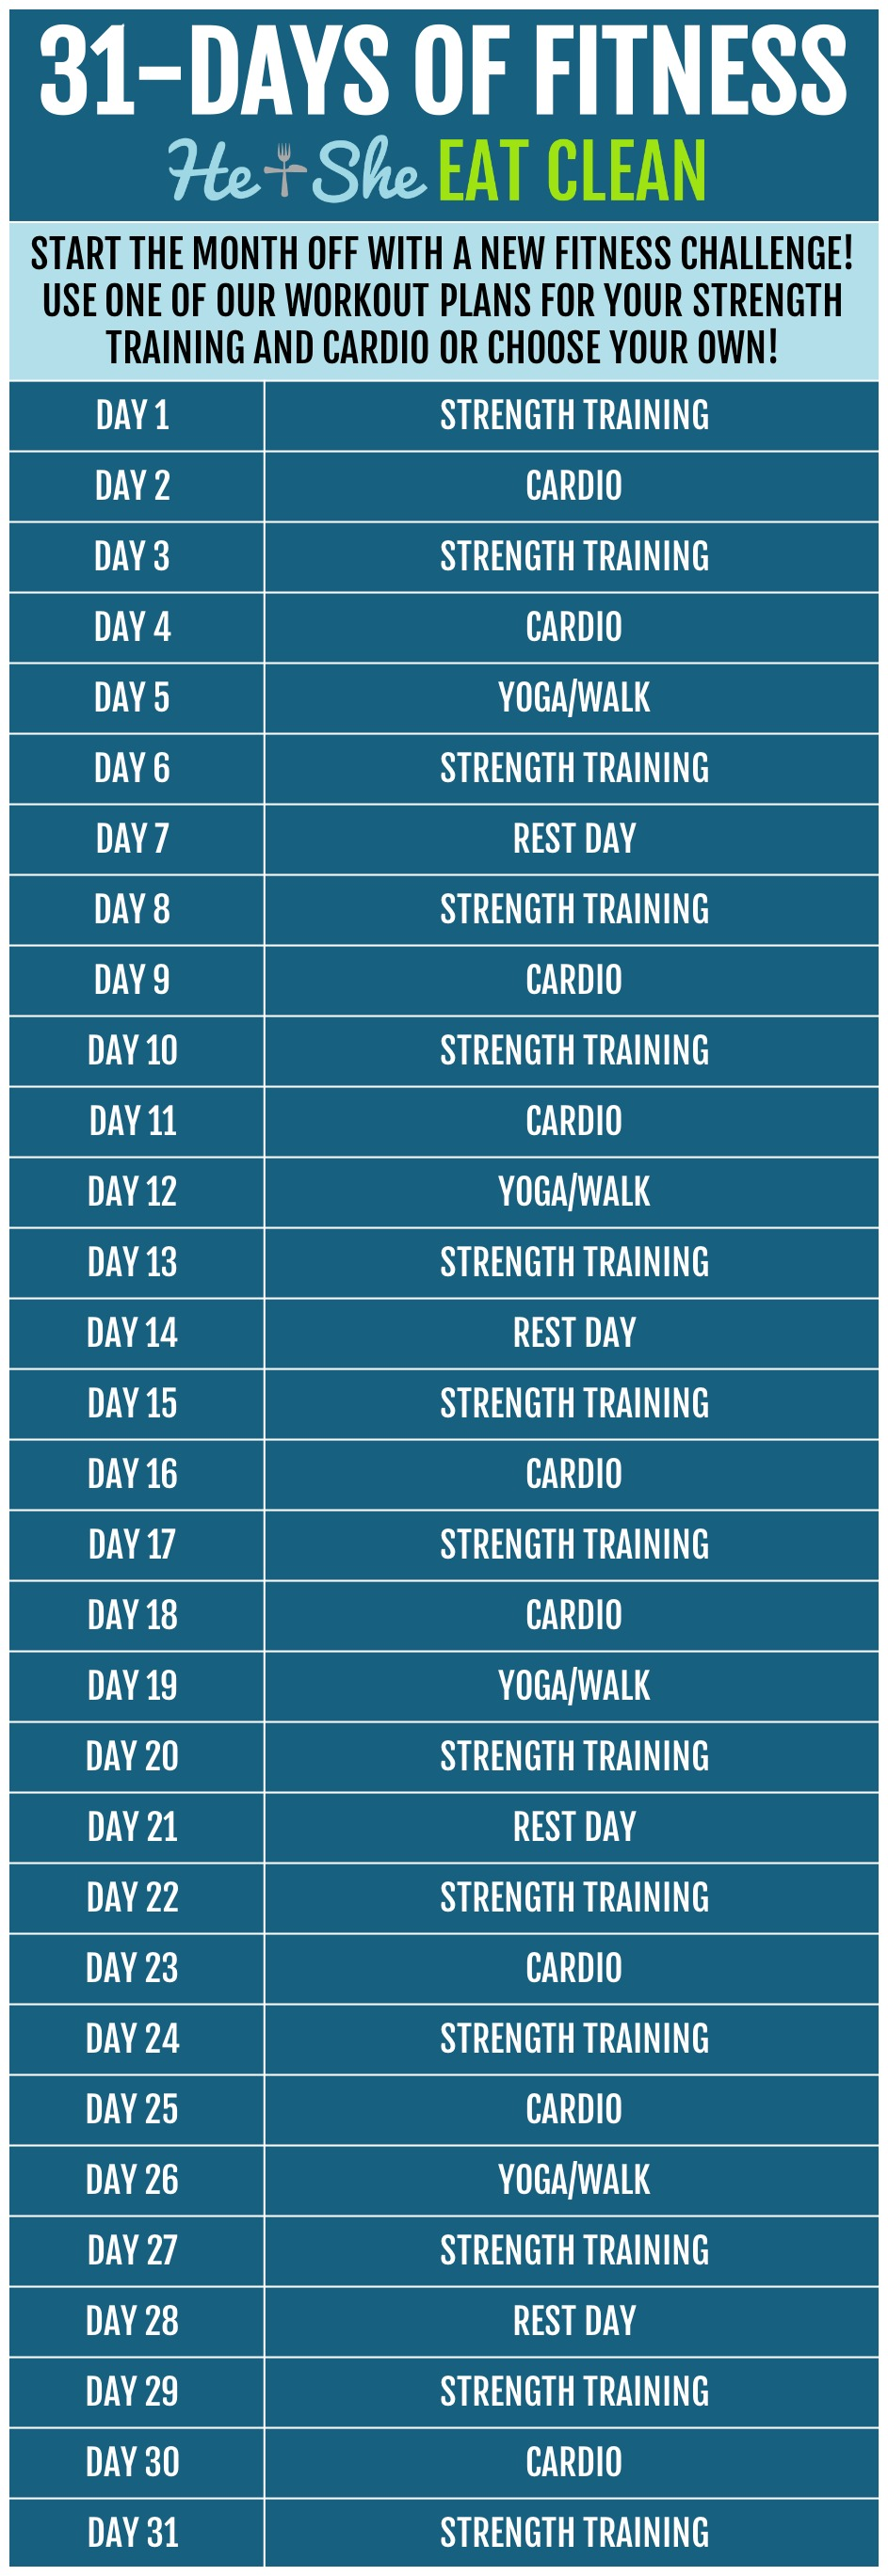 31 Days of Fitness Strength Training and Cardio Challenge